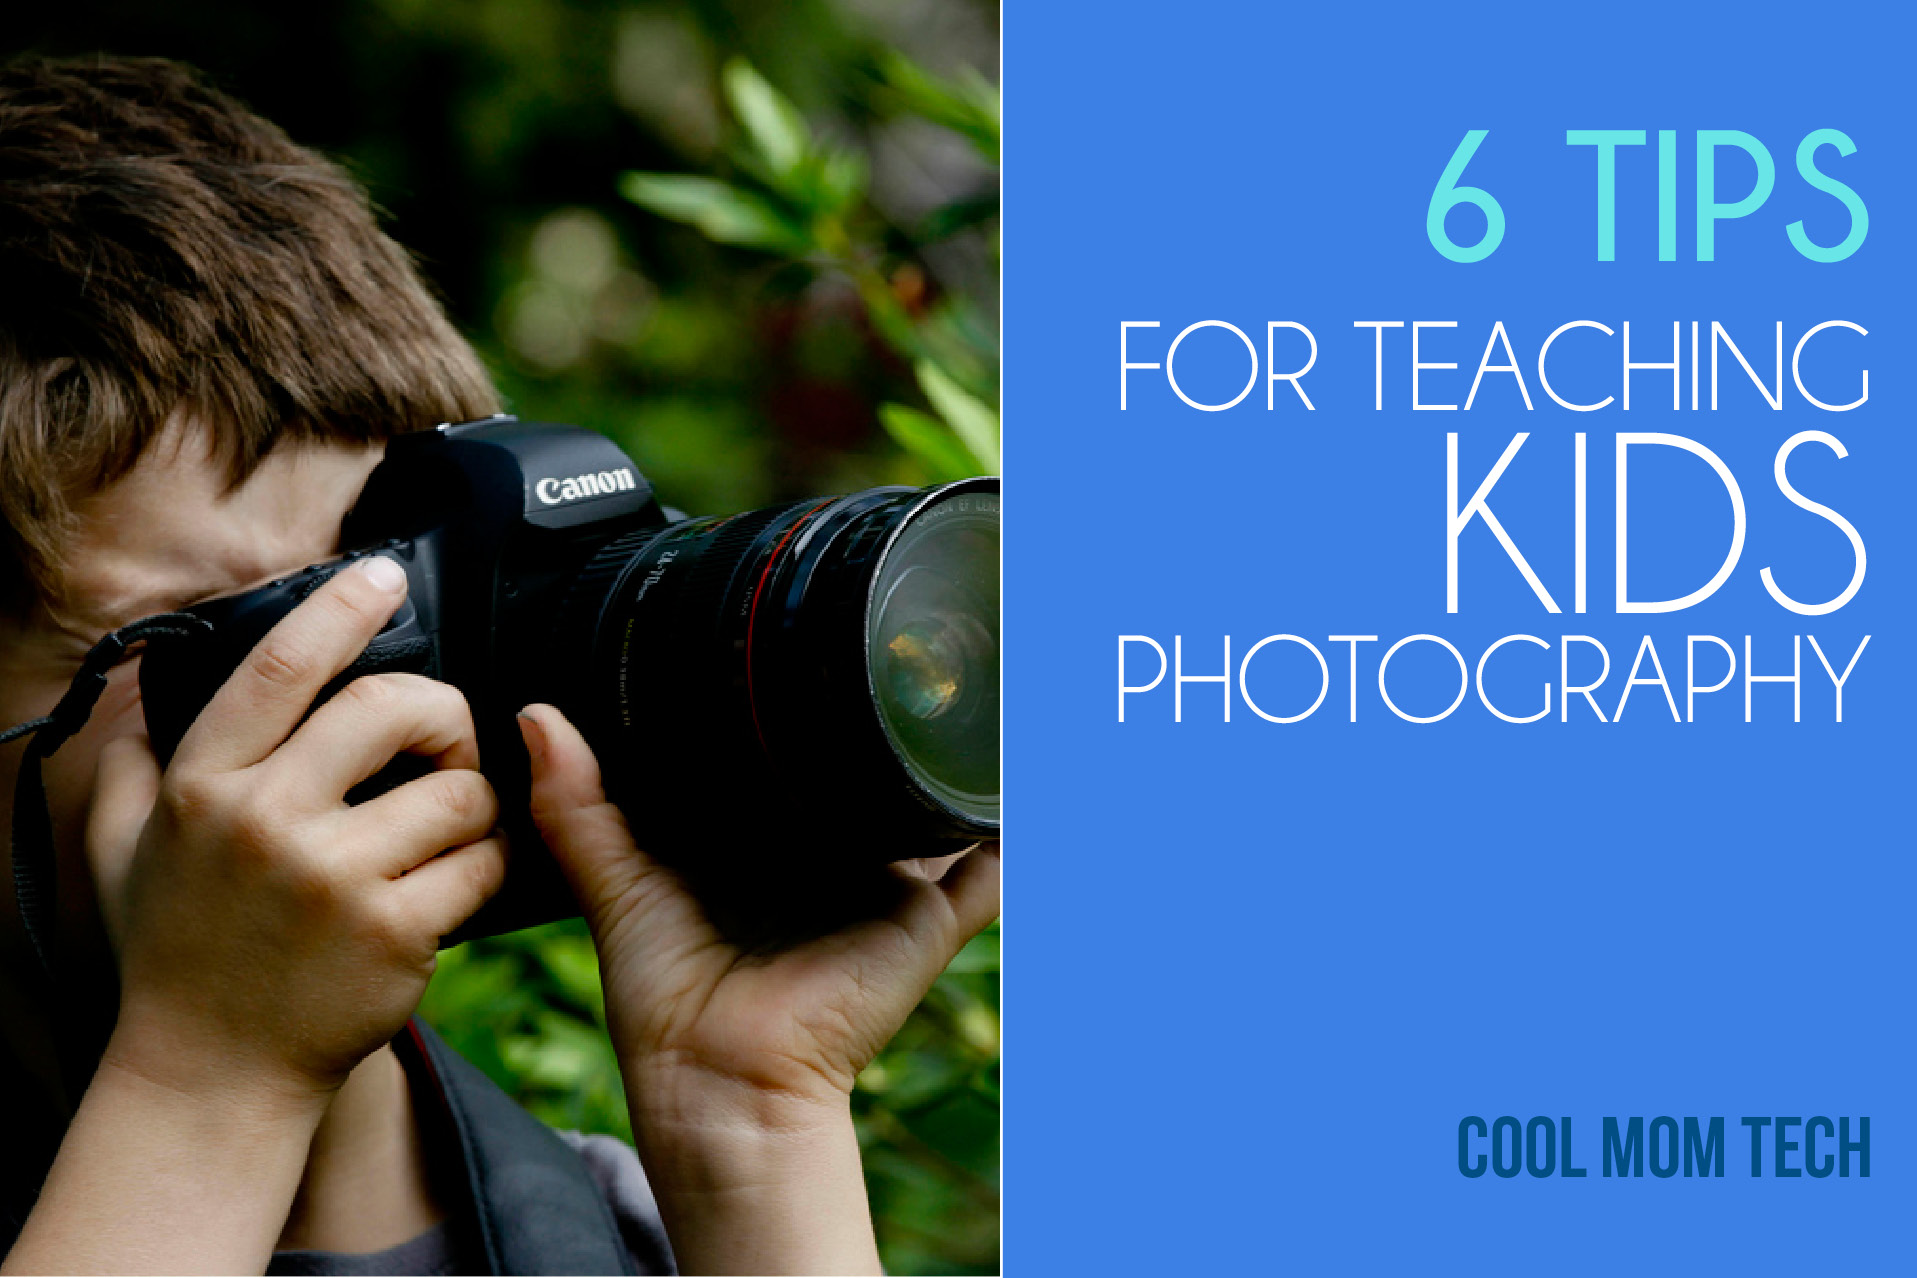 6 smart, easy tips for teaching kids photography